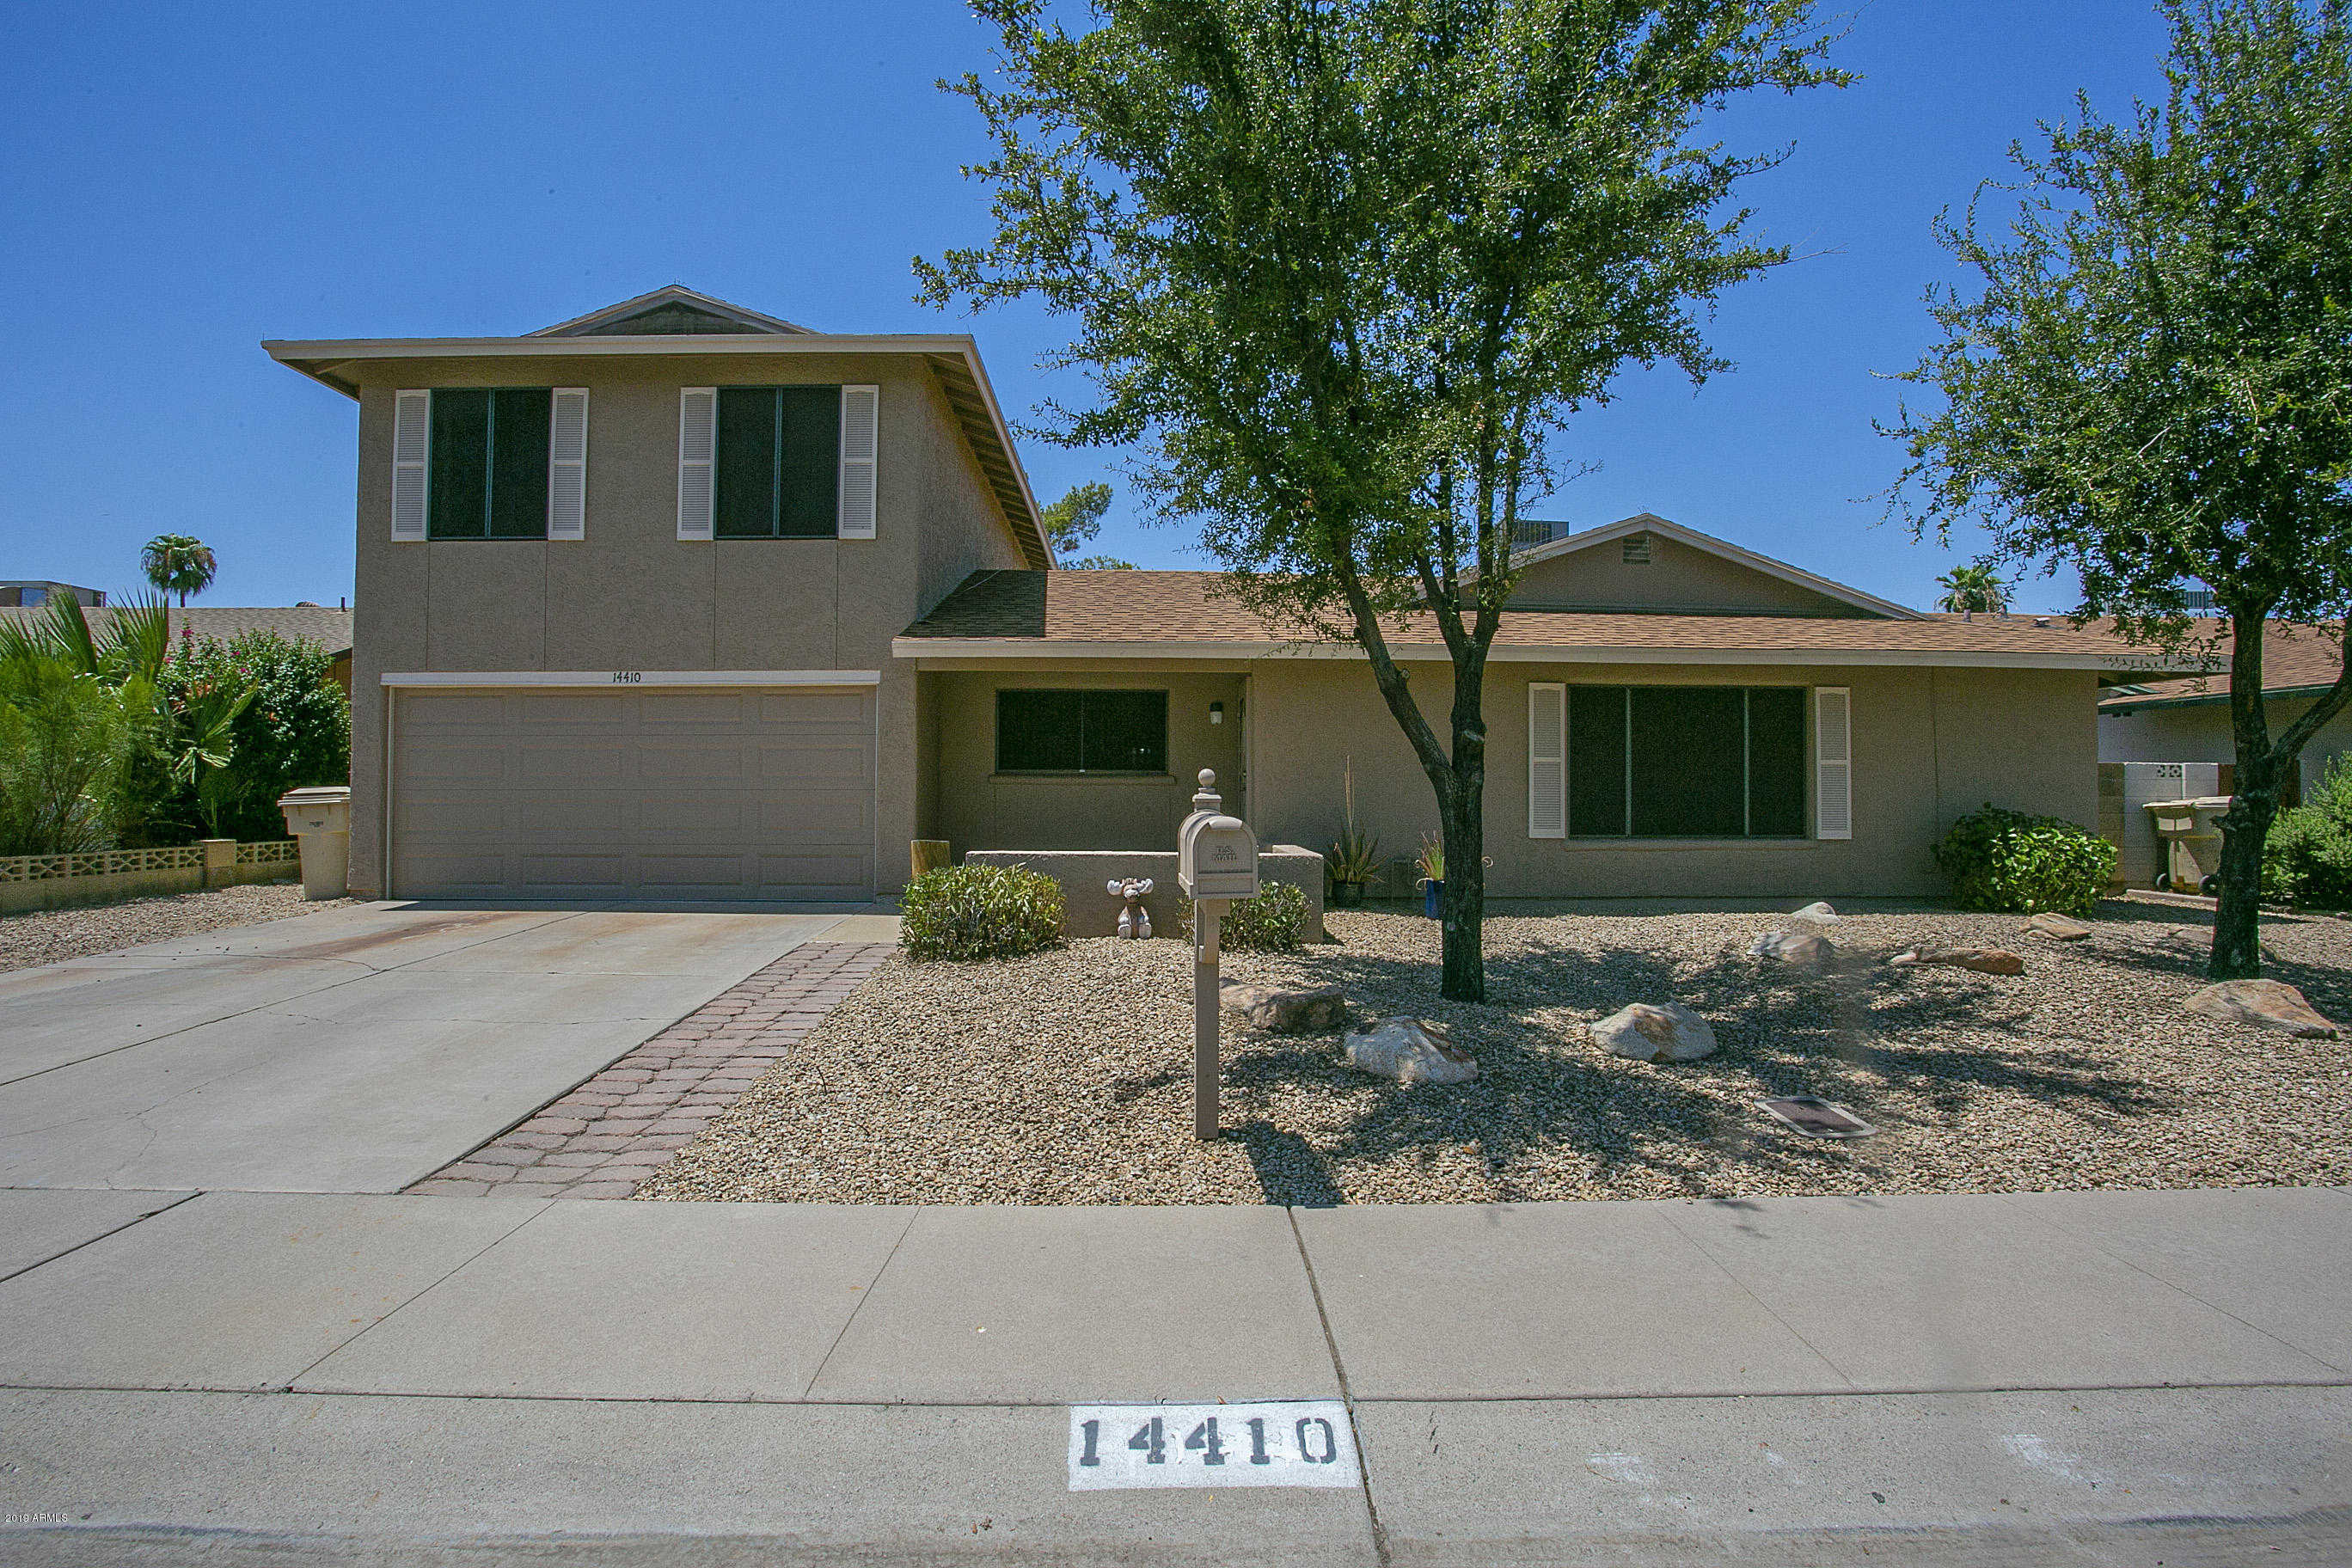 $320,000 - 4Br/3Ba - Home for Sale in Deerview Unit 15, Glendale